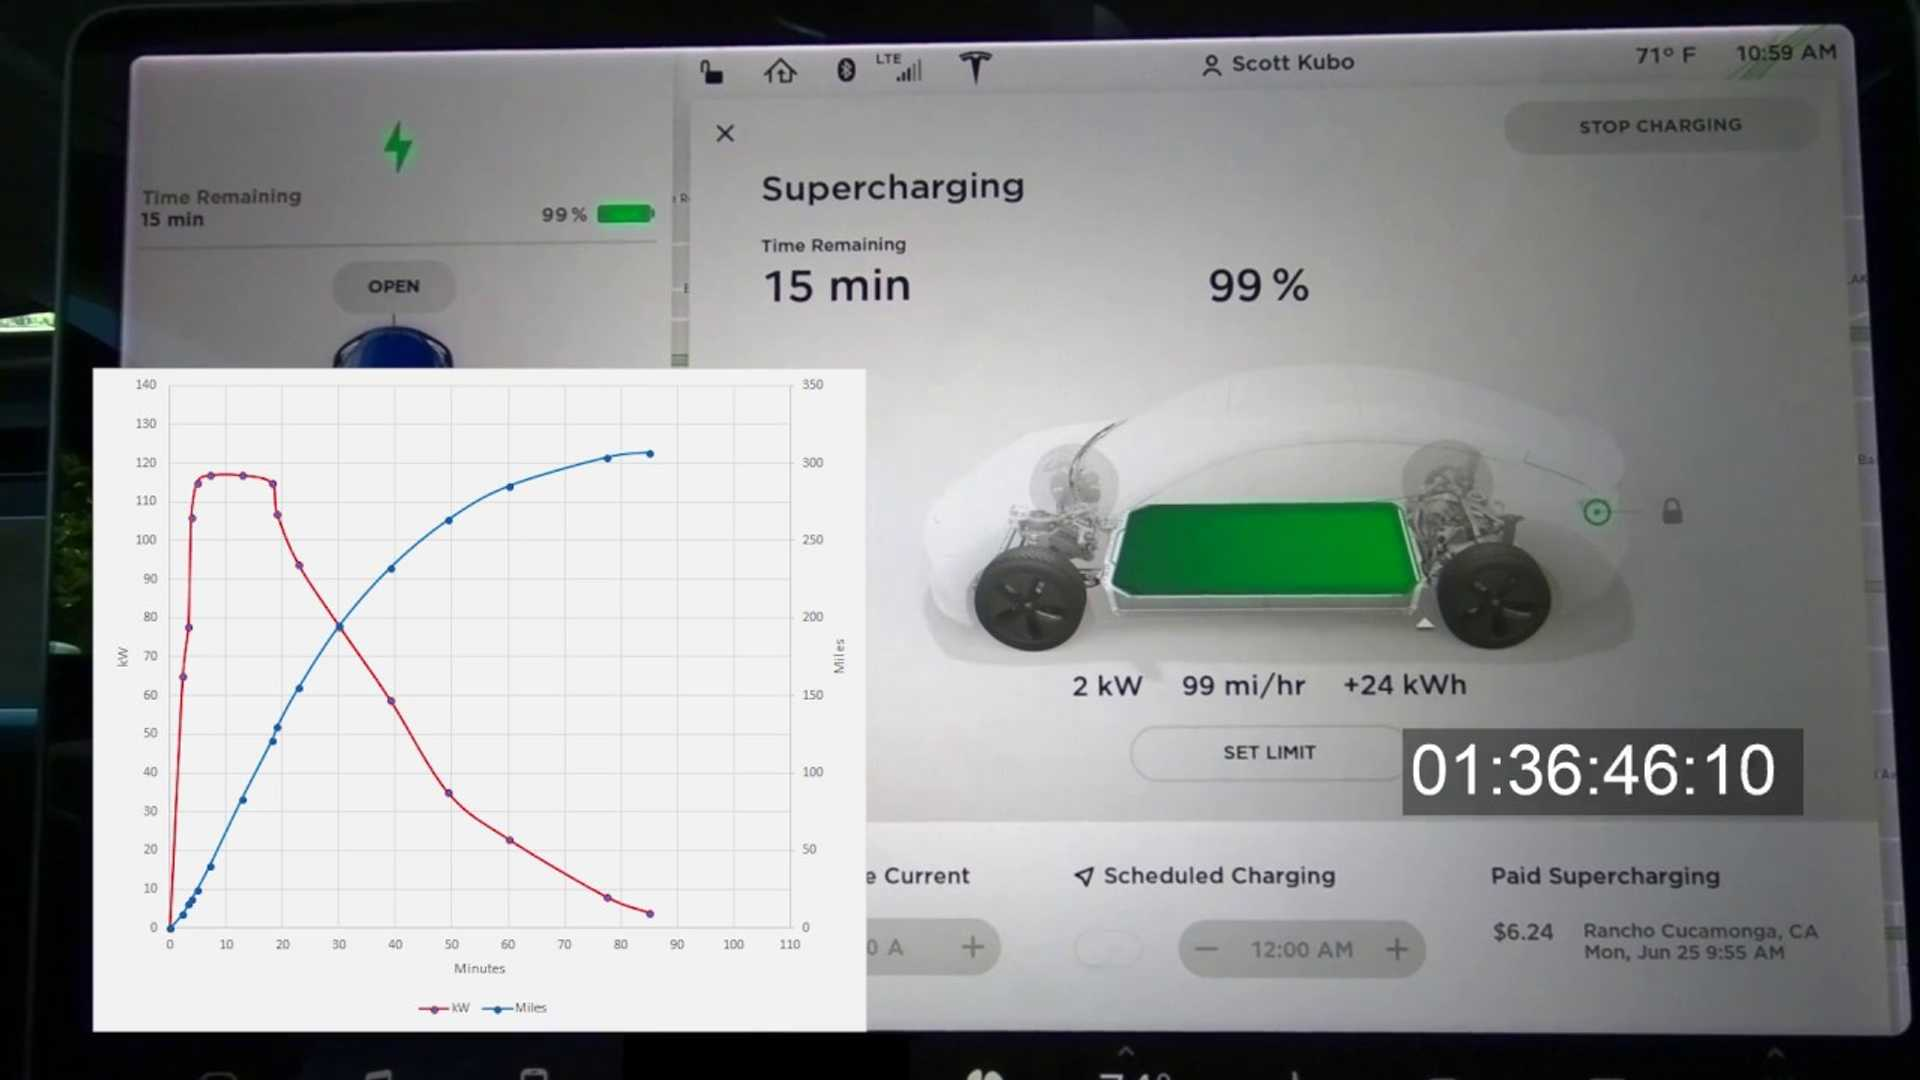 Watch Time-Lapse Of Tesla Model 3 Supercharging From 0 - 100%